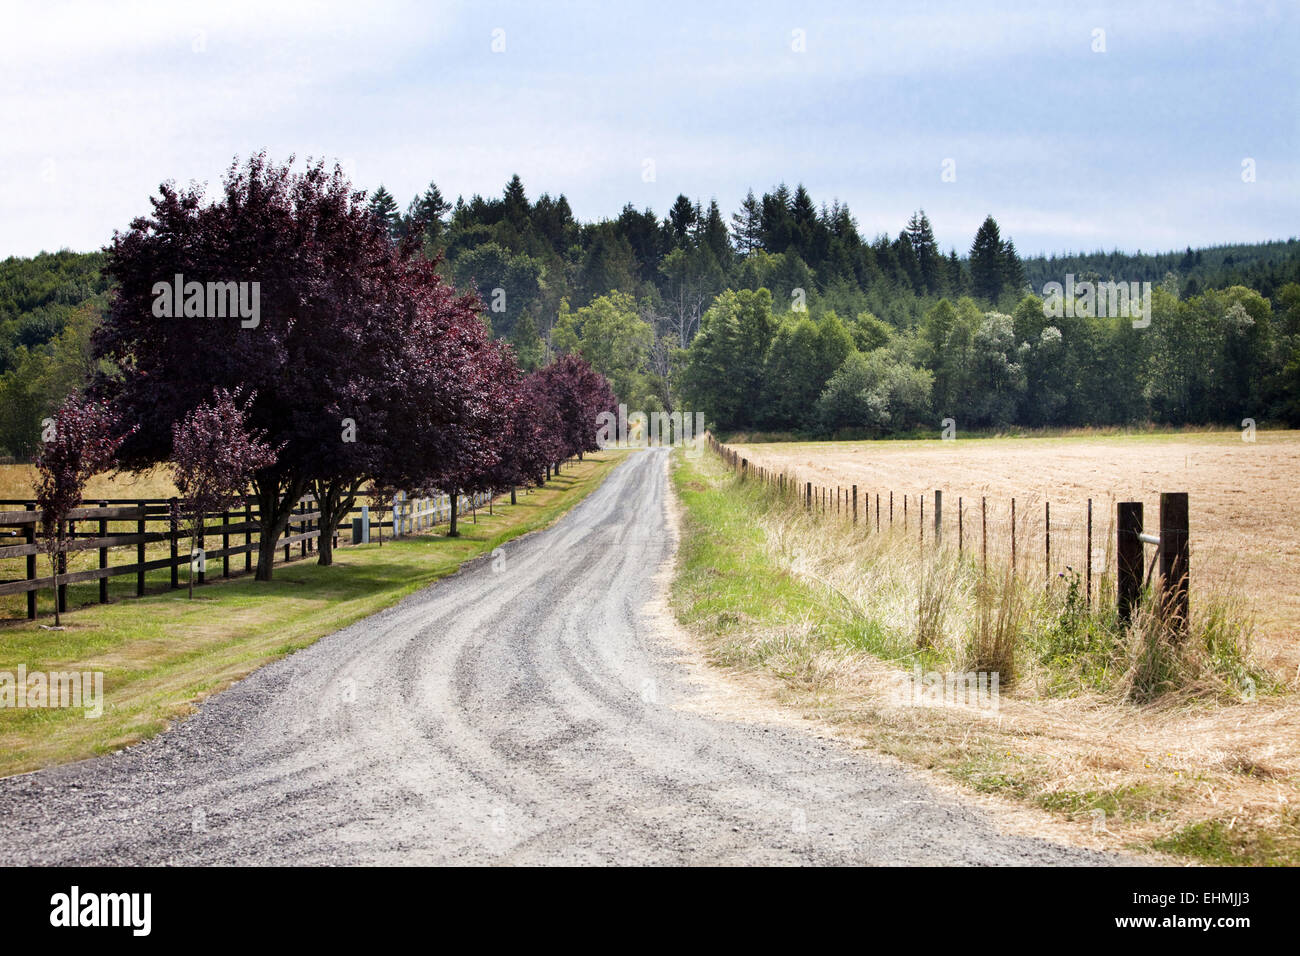 Dirt road between grass fields in rural landscape - Stock Image